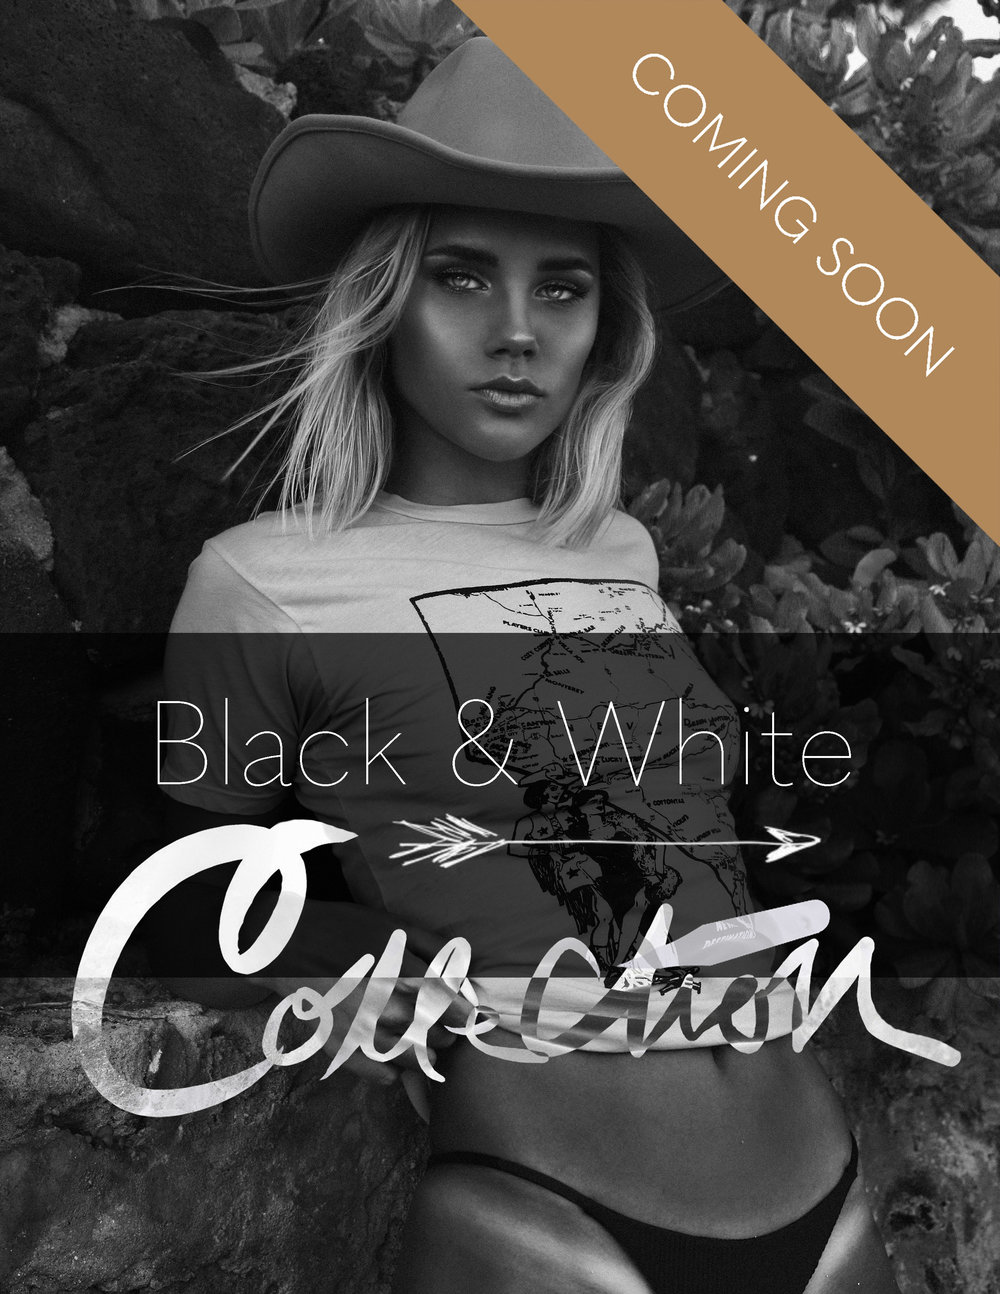 Black and White Collection Photoshop Actions - SHOP Photographer Alyssa Risley @alyssarisley